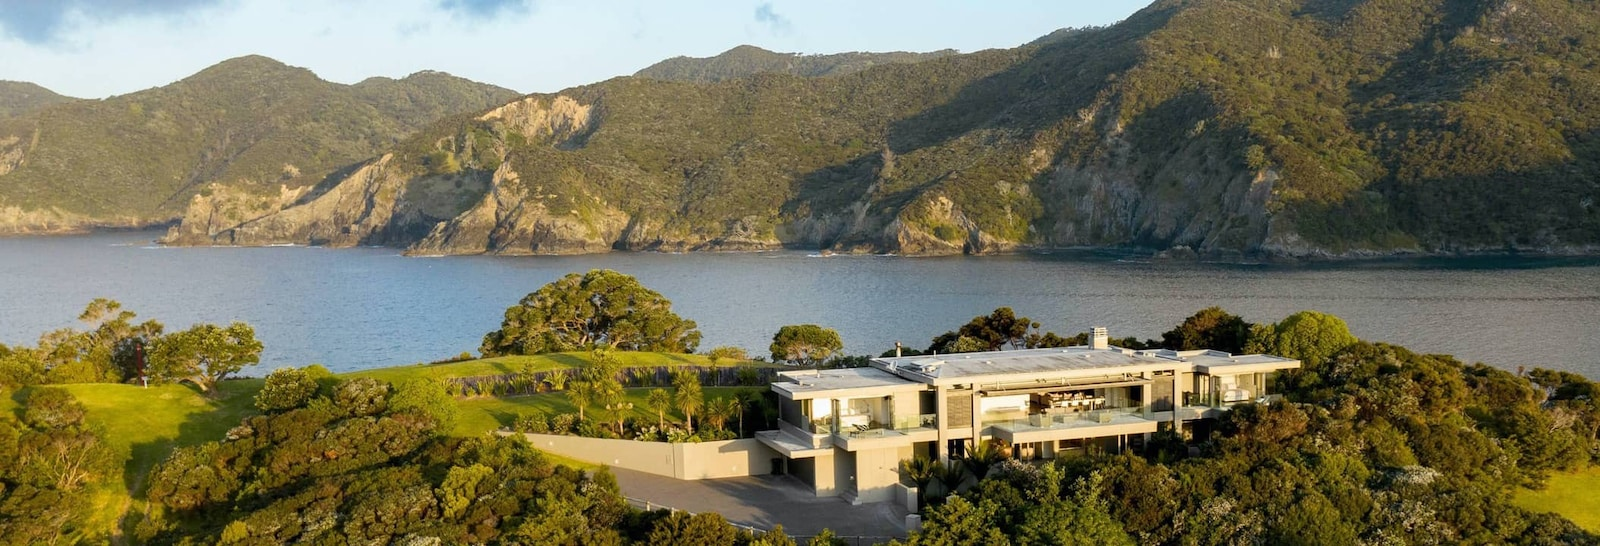 Luxury rentals in Novi Zeland